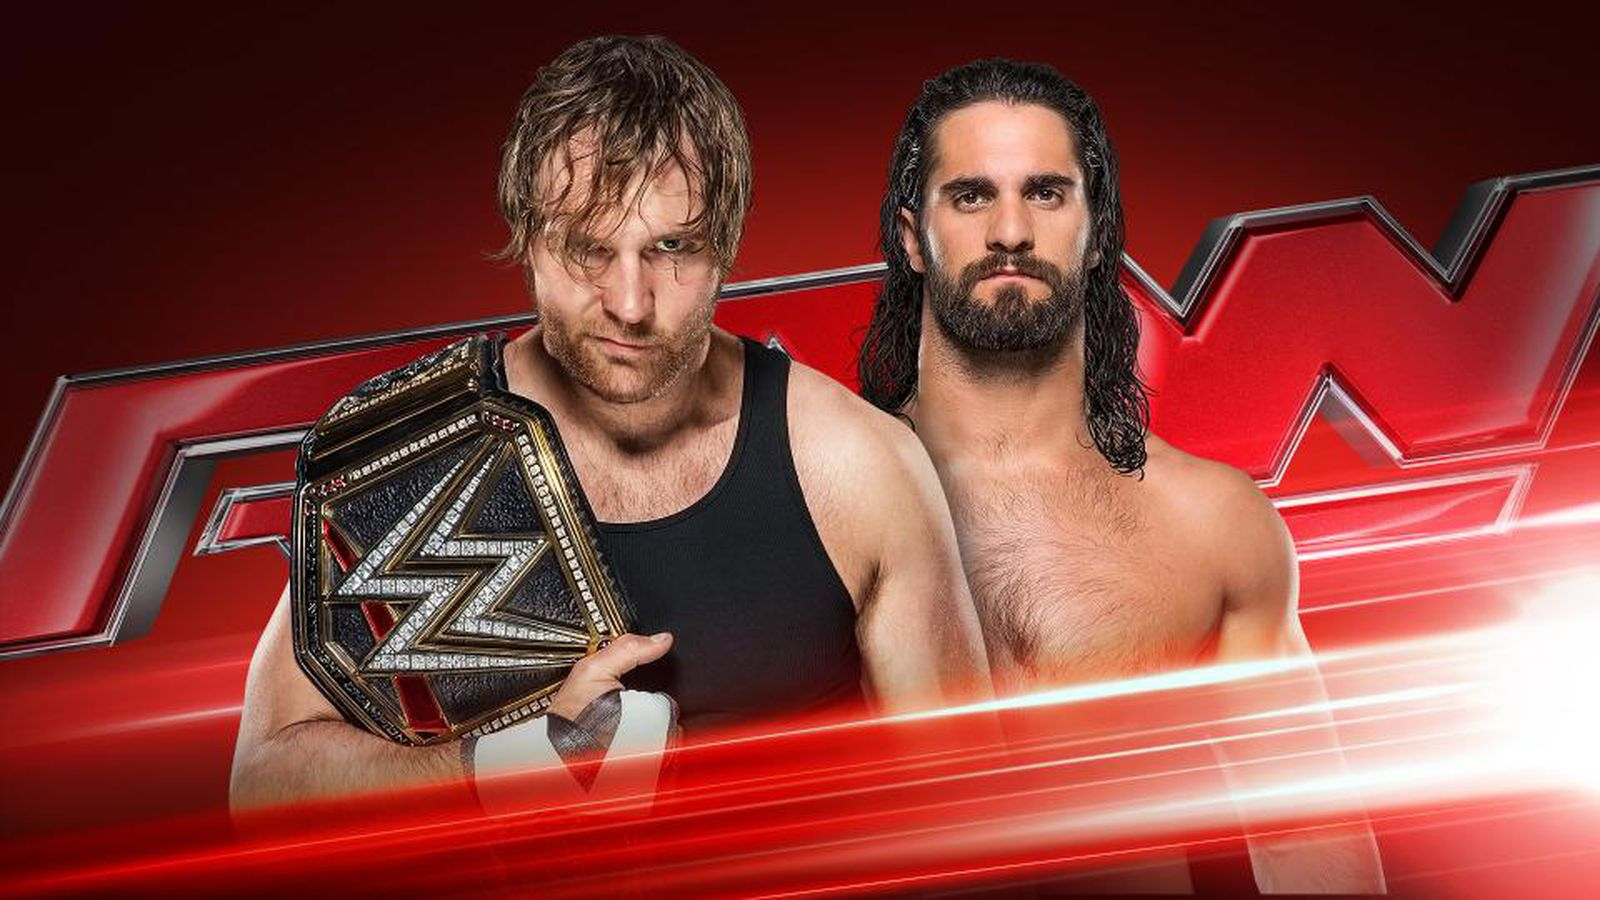 Wwe raw results live